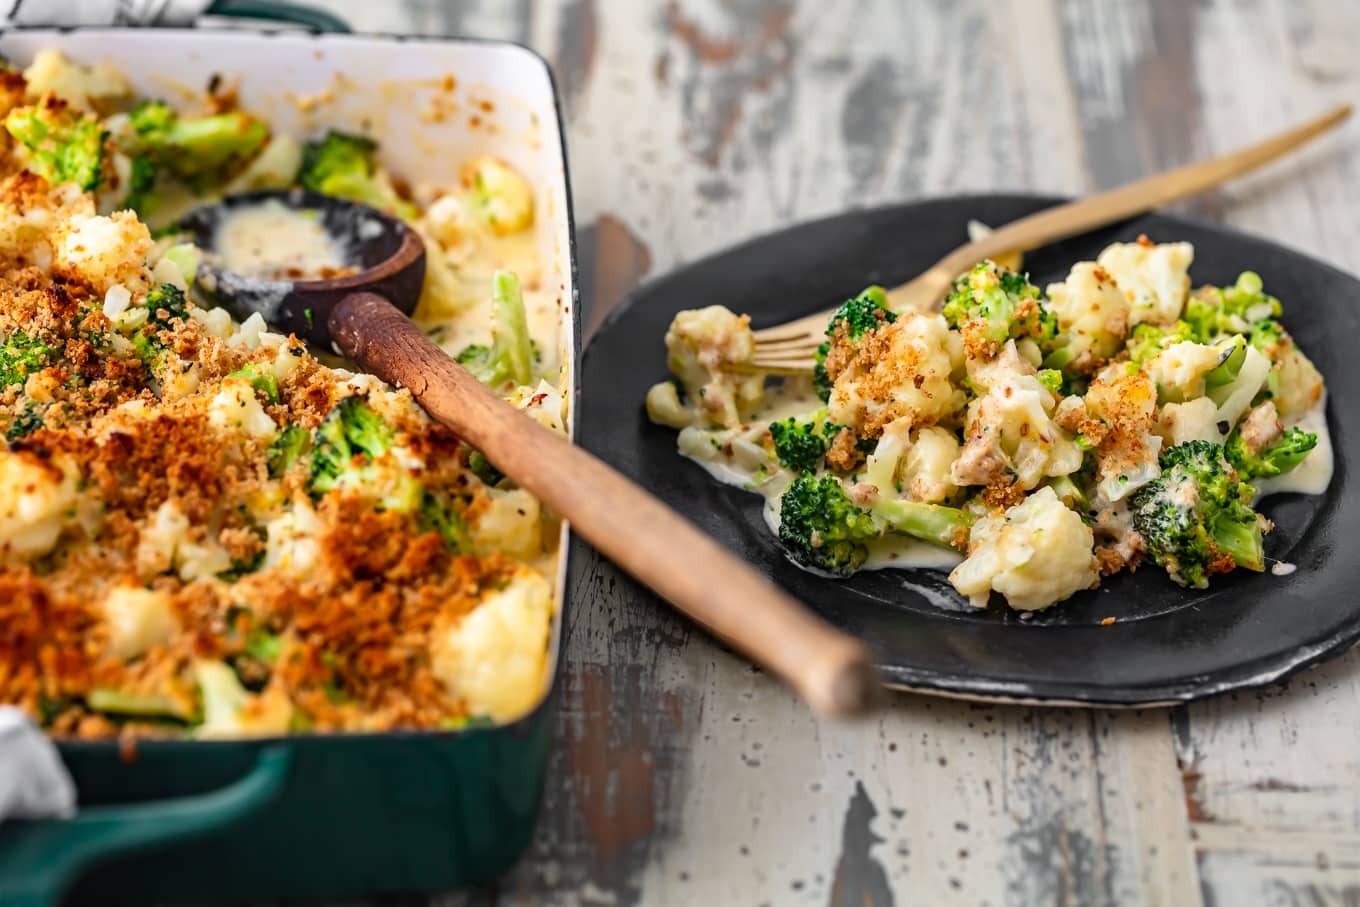 a plate of broccoli cauliflower casserole next to a full casserole dish